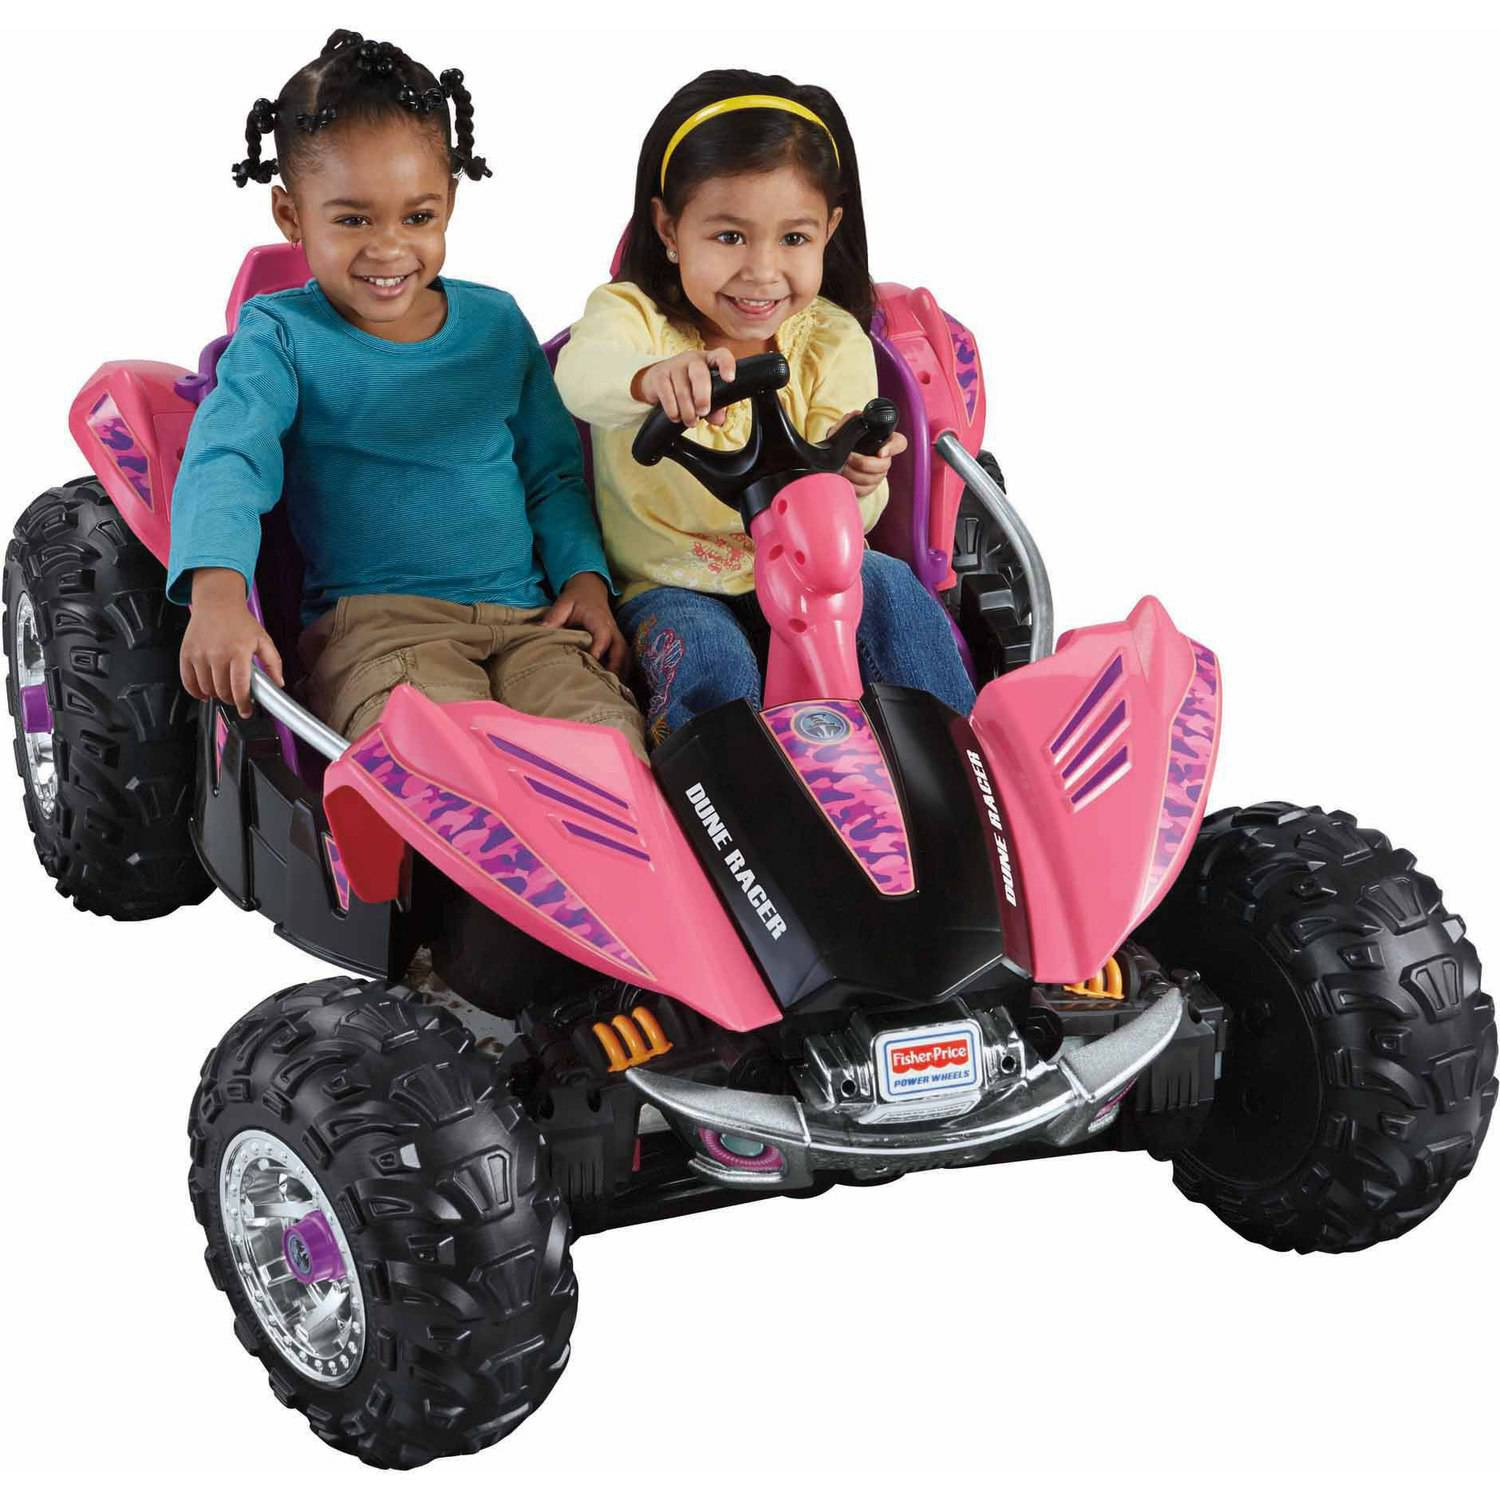 Power Wheels Dune Racer 12-Volt Battery-Powered Ride-On, Pink